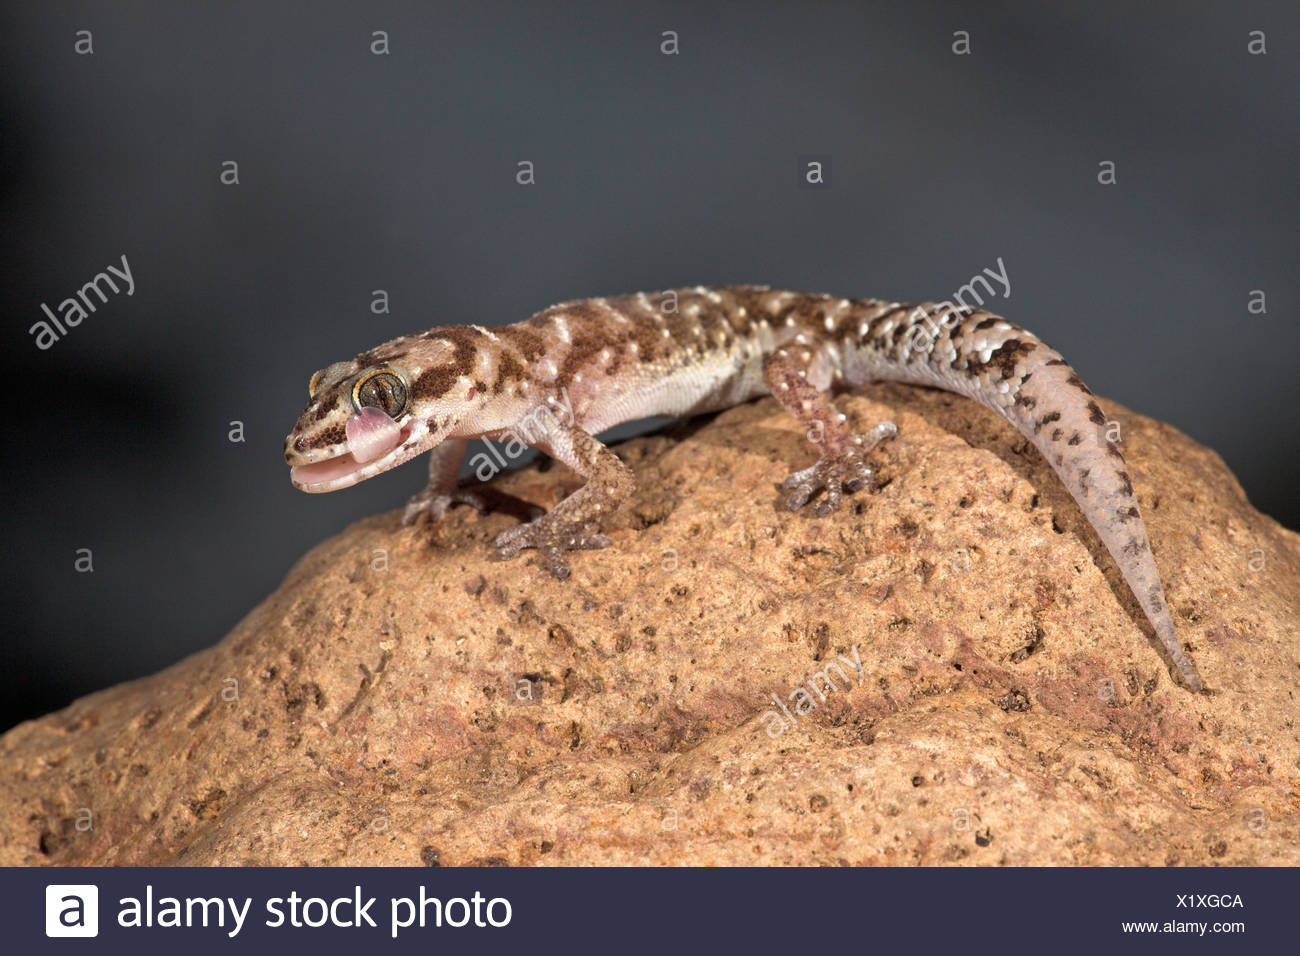 Photo of a Van Son's Gecko licking on its own eye, gecko's dont have eyelids so they have to clean their eyes with their tongue. - Stock Image